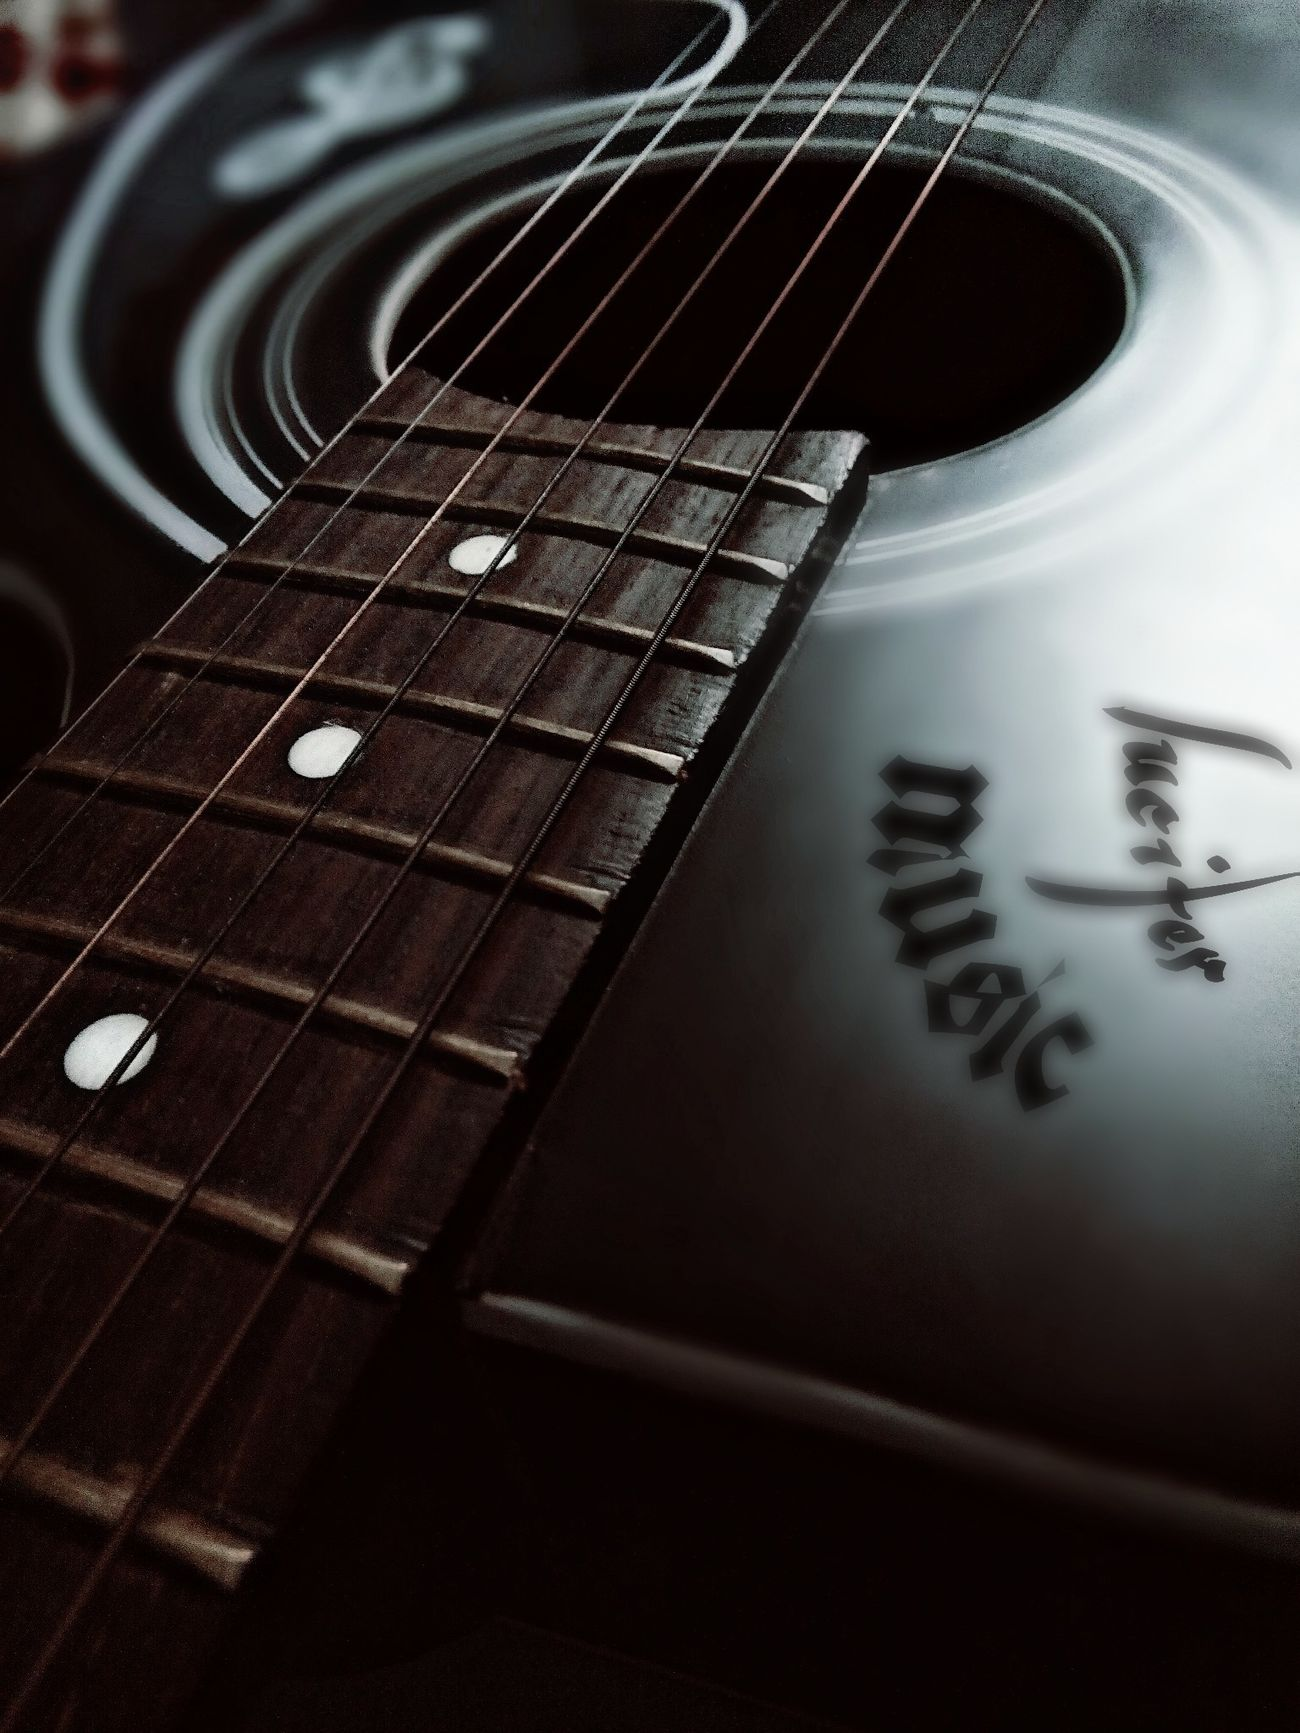 Lovemyguitar Crazyaboutmusic PhonePhotography HDR Selfclicked simplicity is the bst city to live in